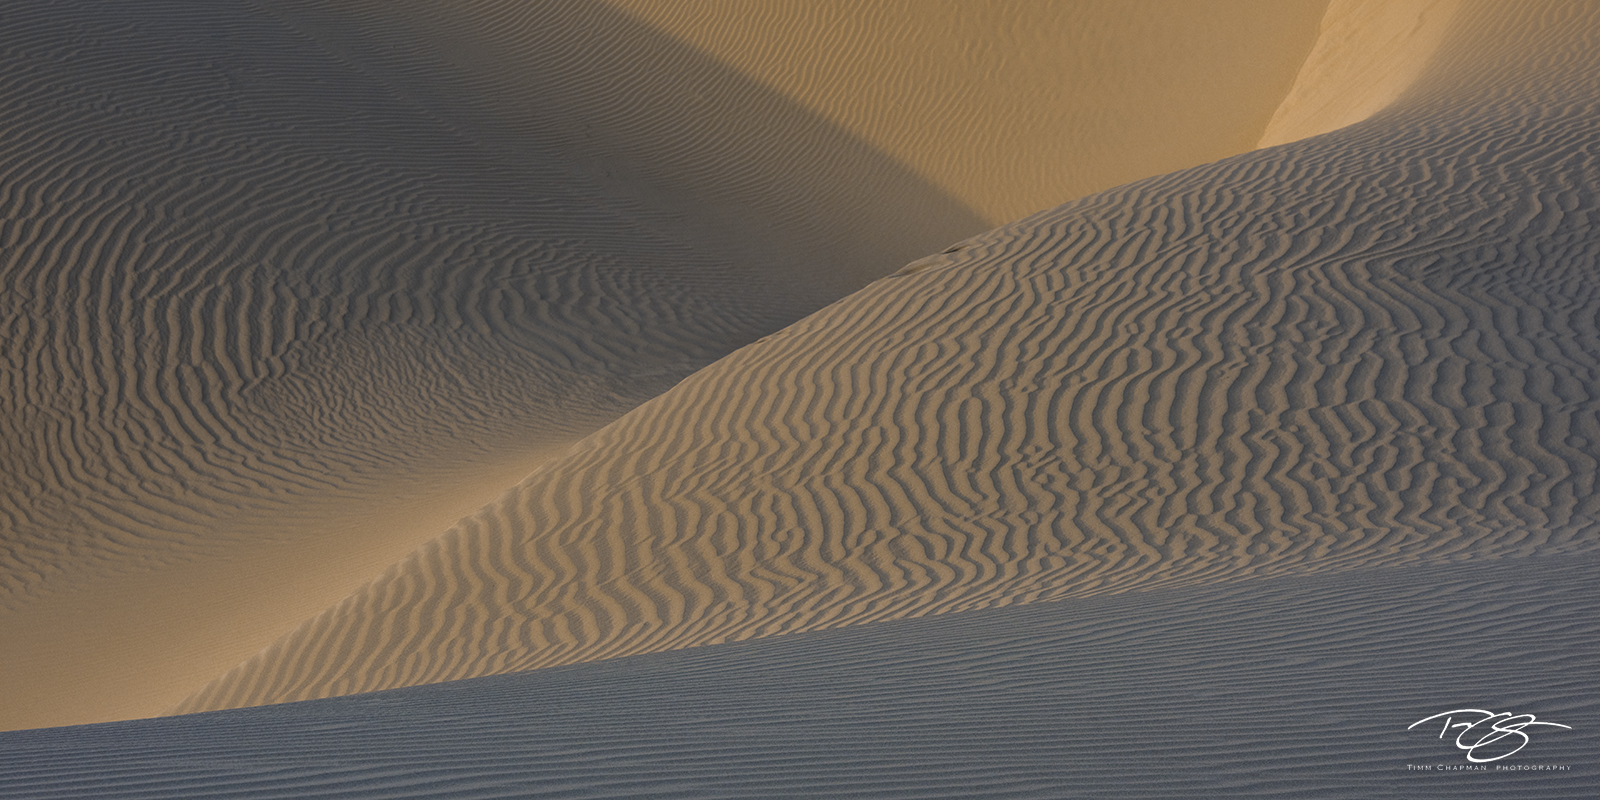 gobi desert, china, abstract, patterns, sand dune, sand, dune, desert, sandscape, gobi, panorama, photo